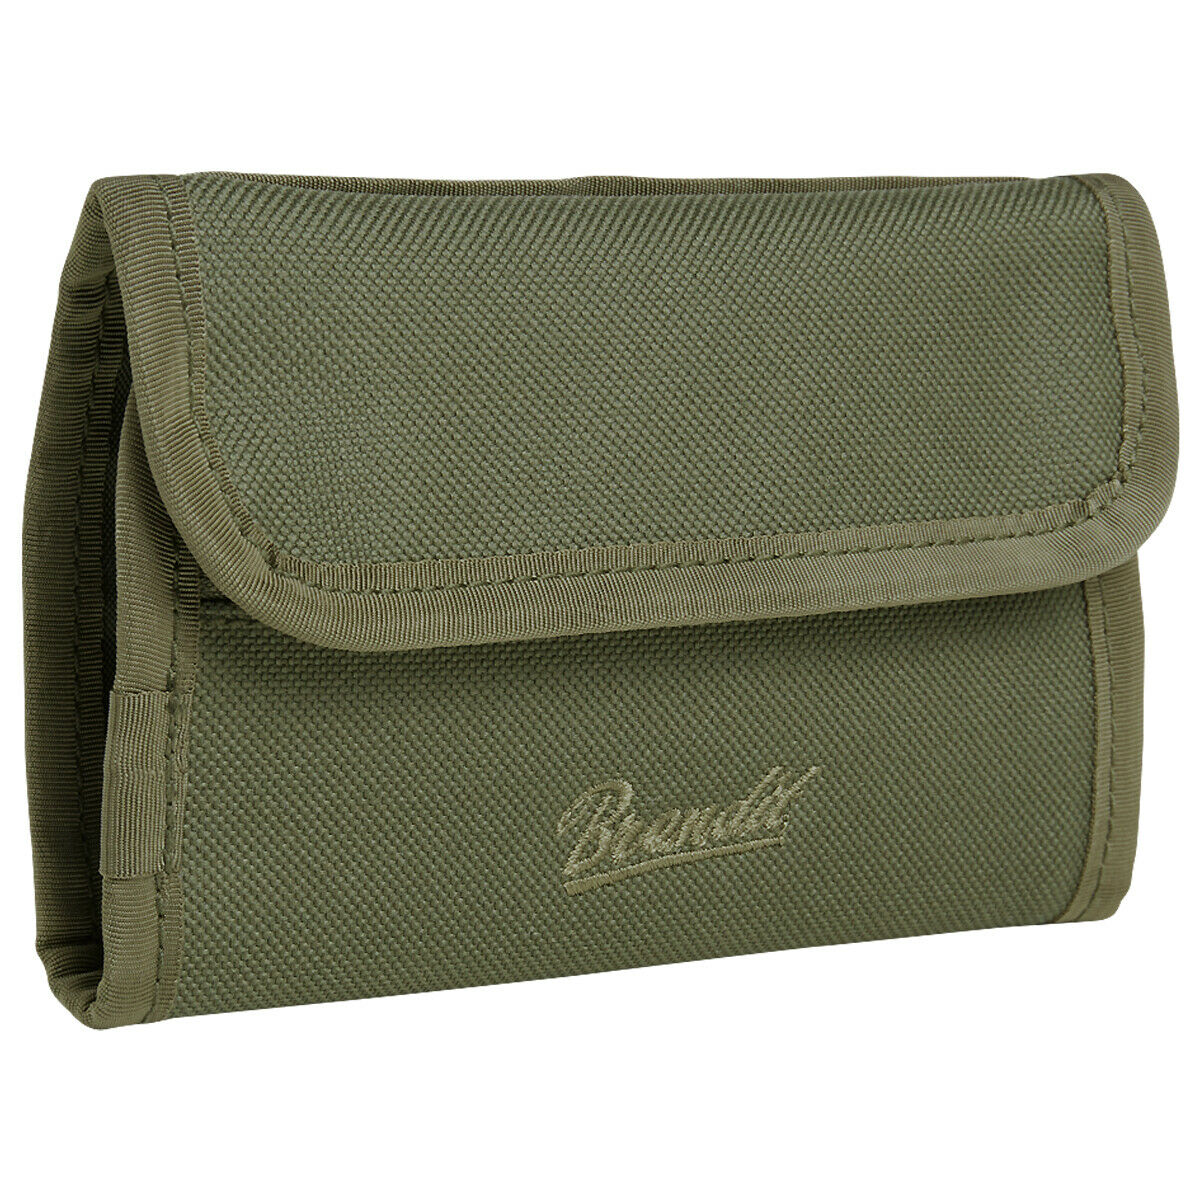 Brandit Wallet Two Zipped Coin Compartment Card Slots Foldable Travel Olive